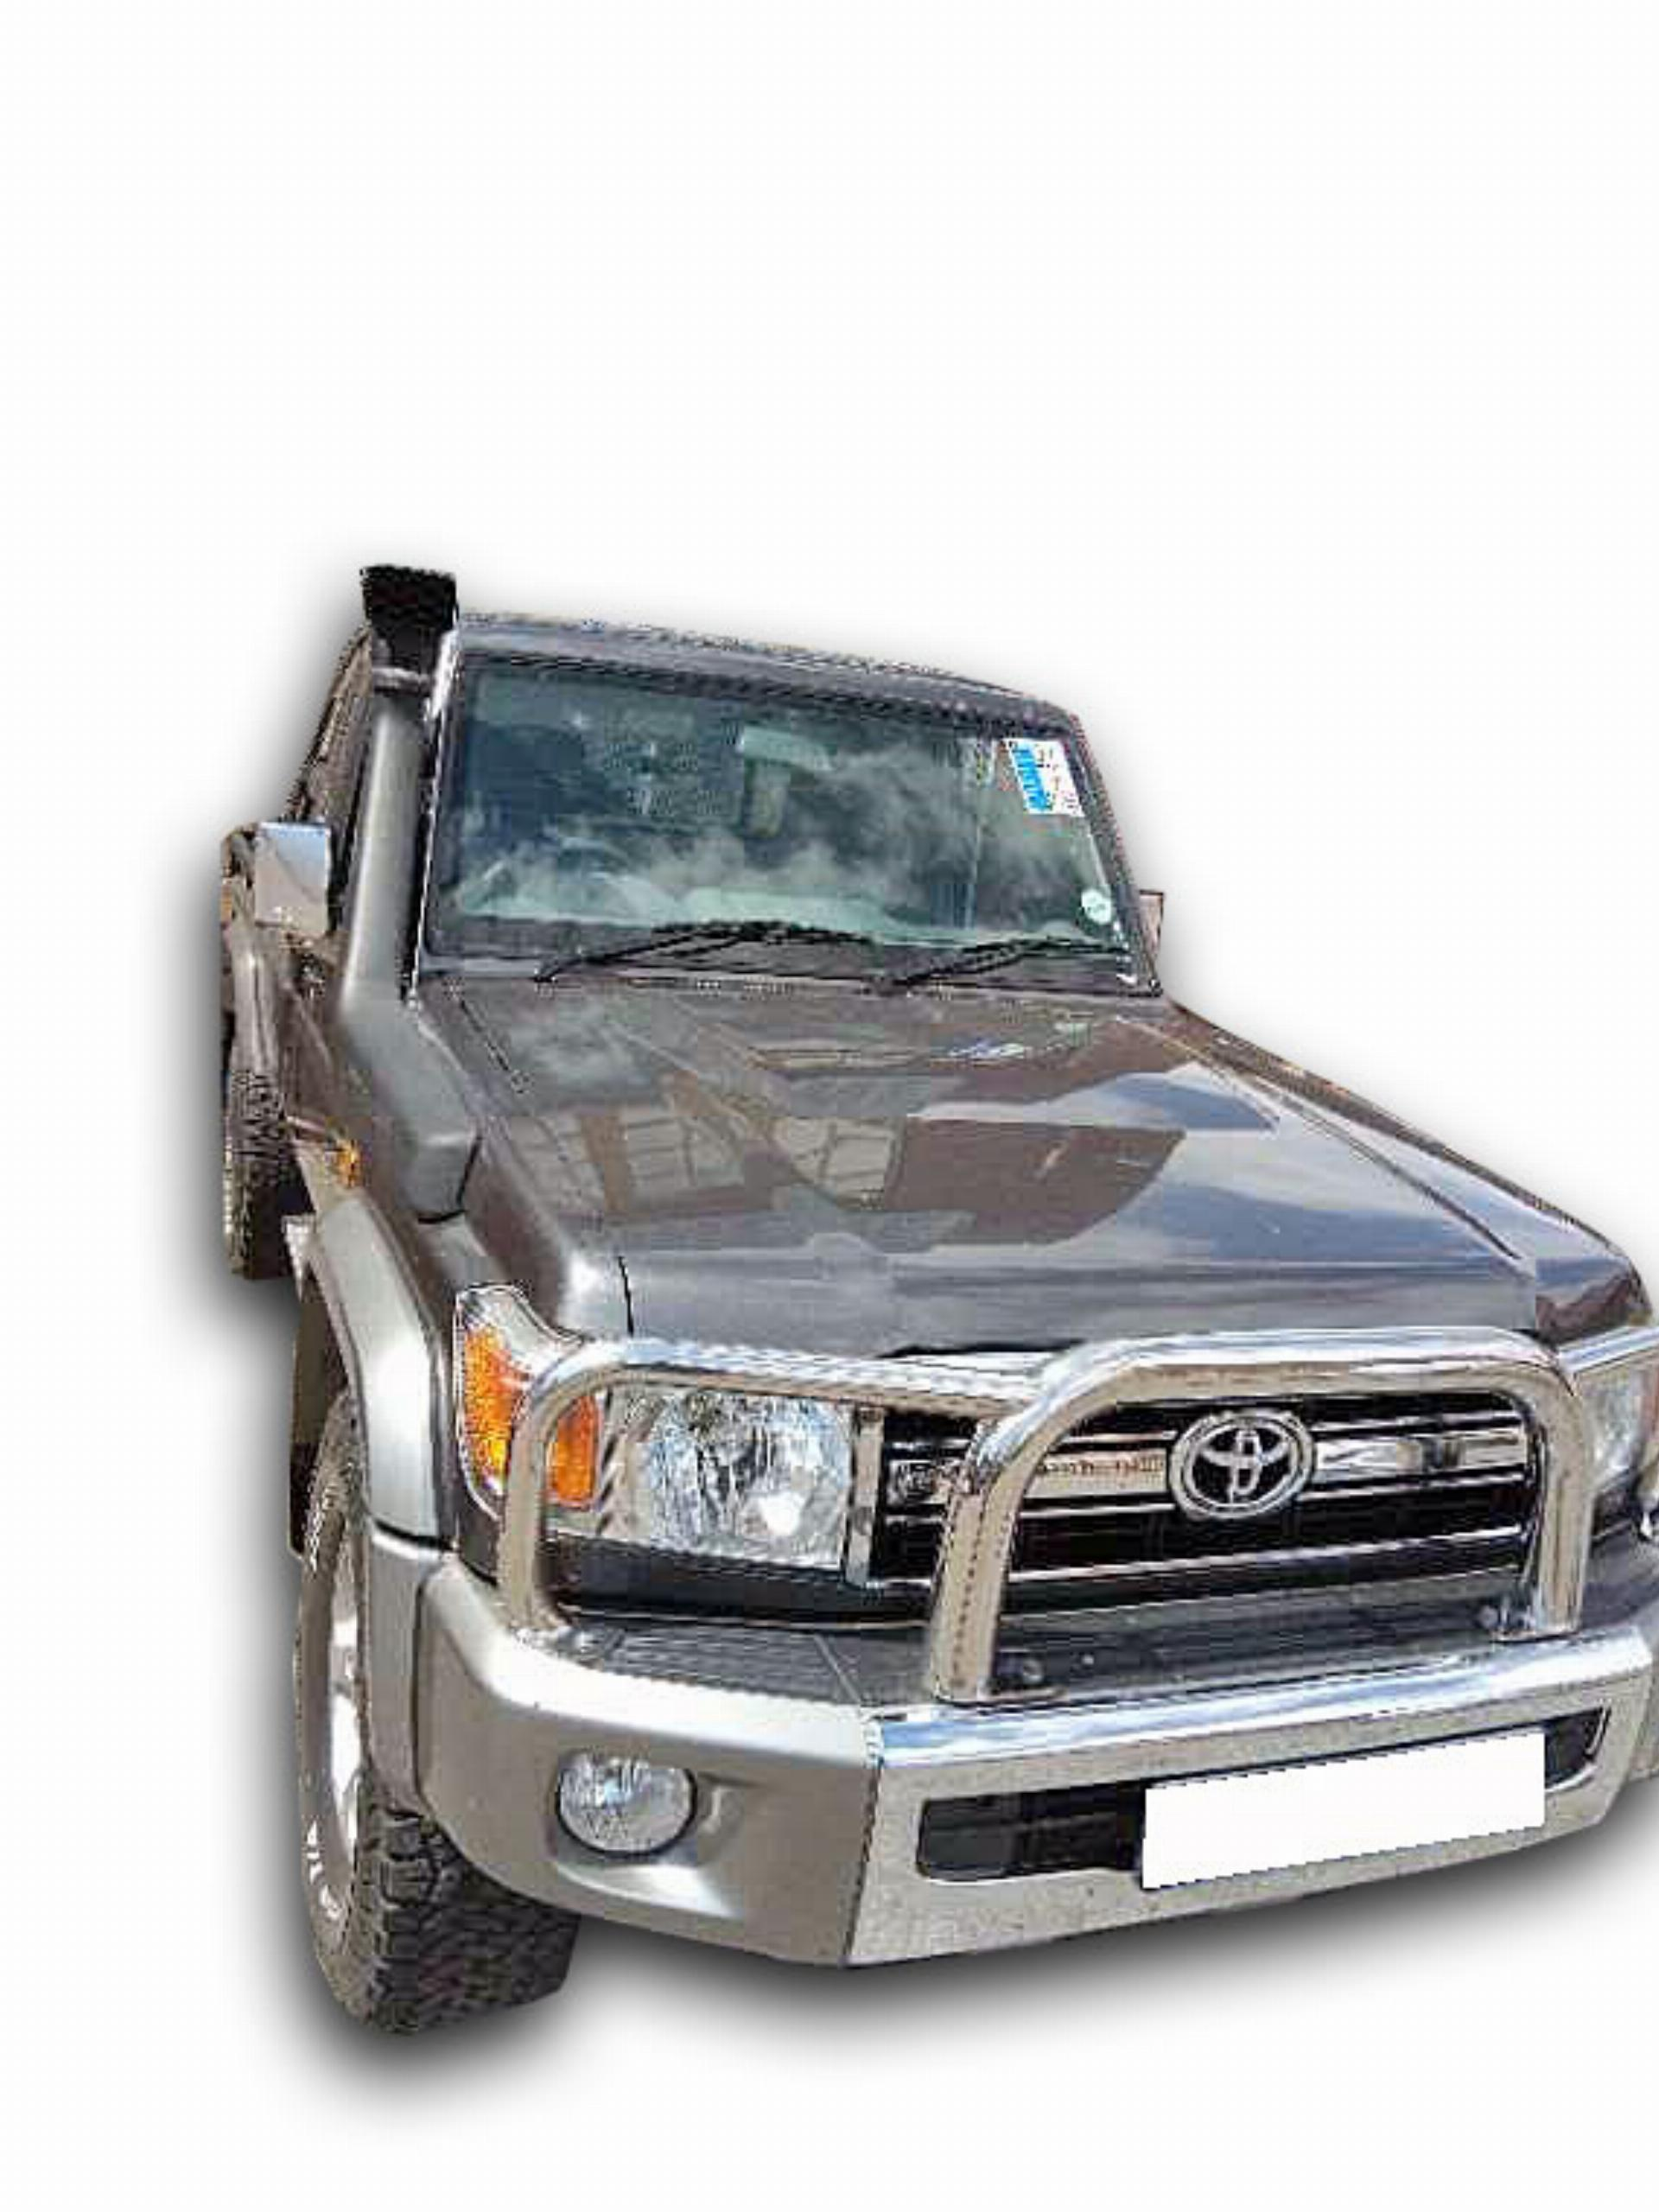 Toyota Land Cruiser Bakkie Land Cruiser 79 4.2D